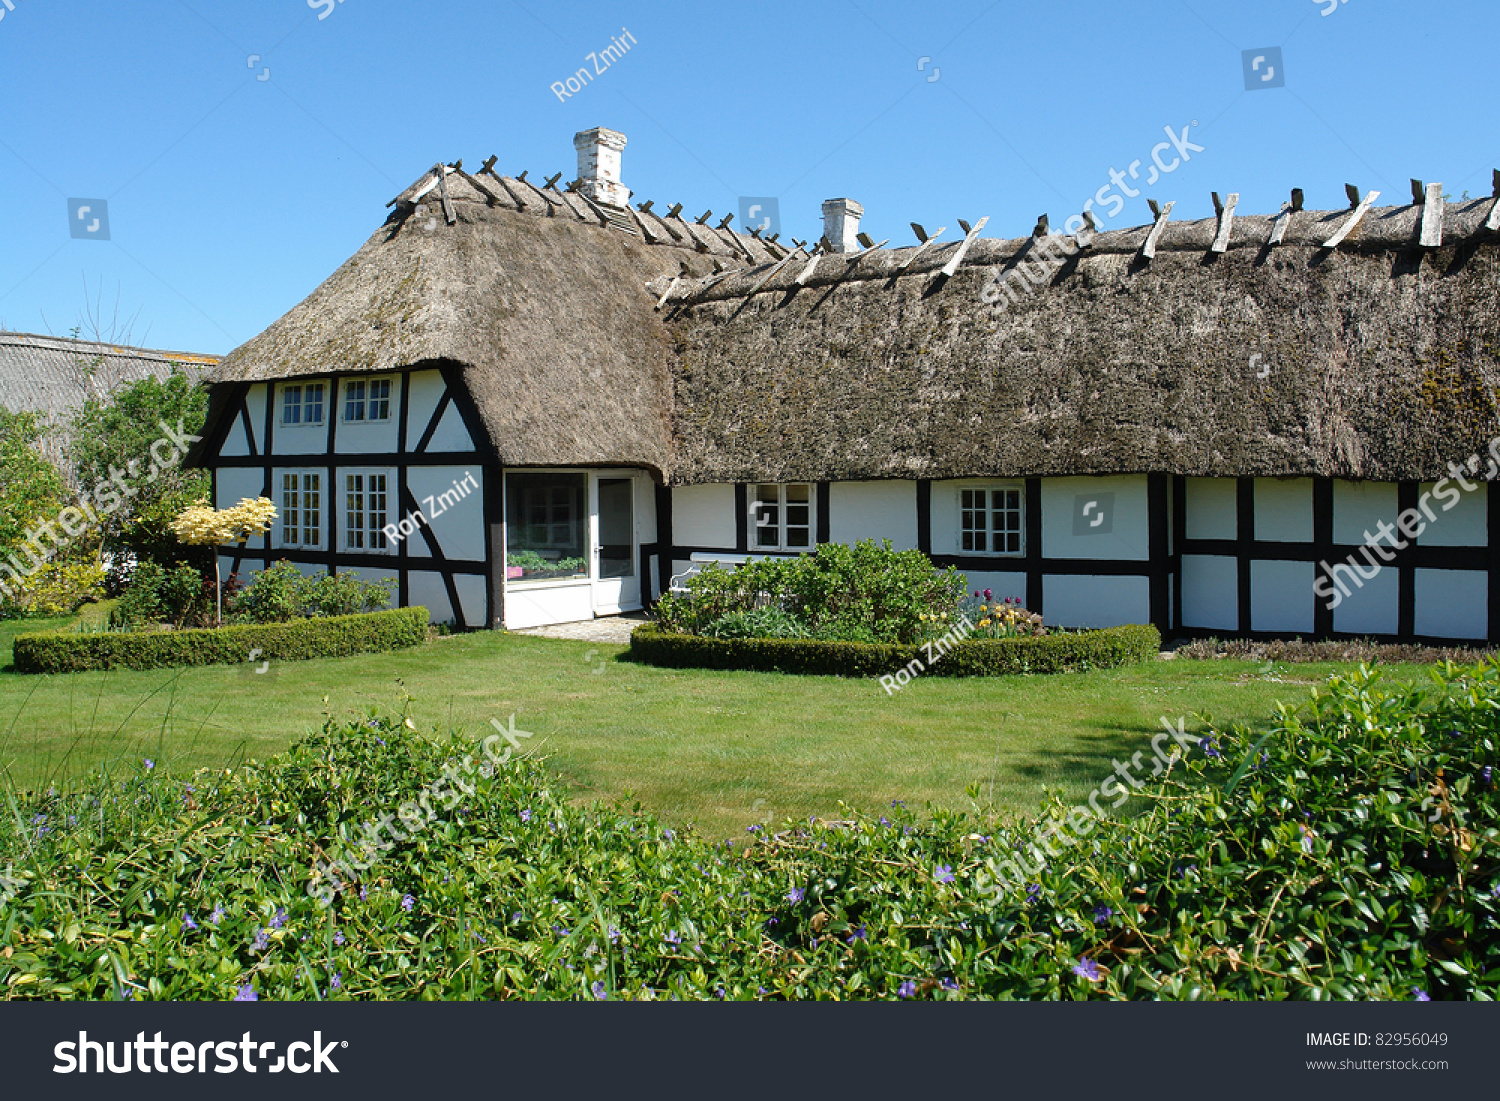 Traditional old classic decorative style danish country thached roof house home denmark stock - Traditional houses attic ...